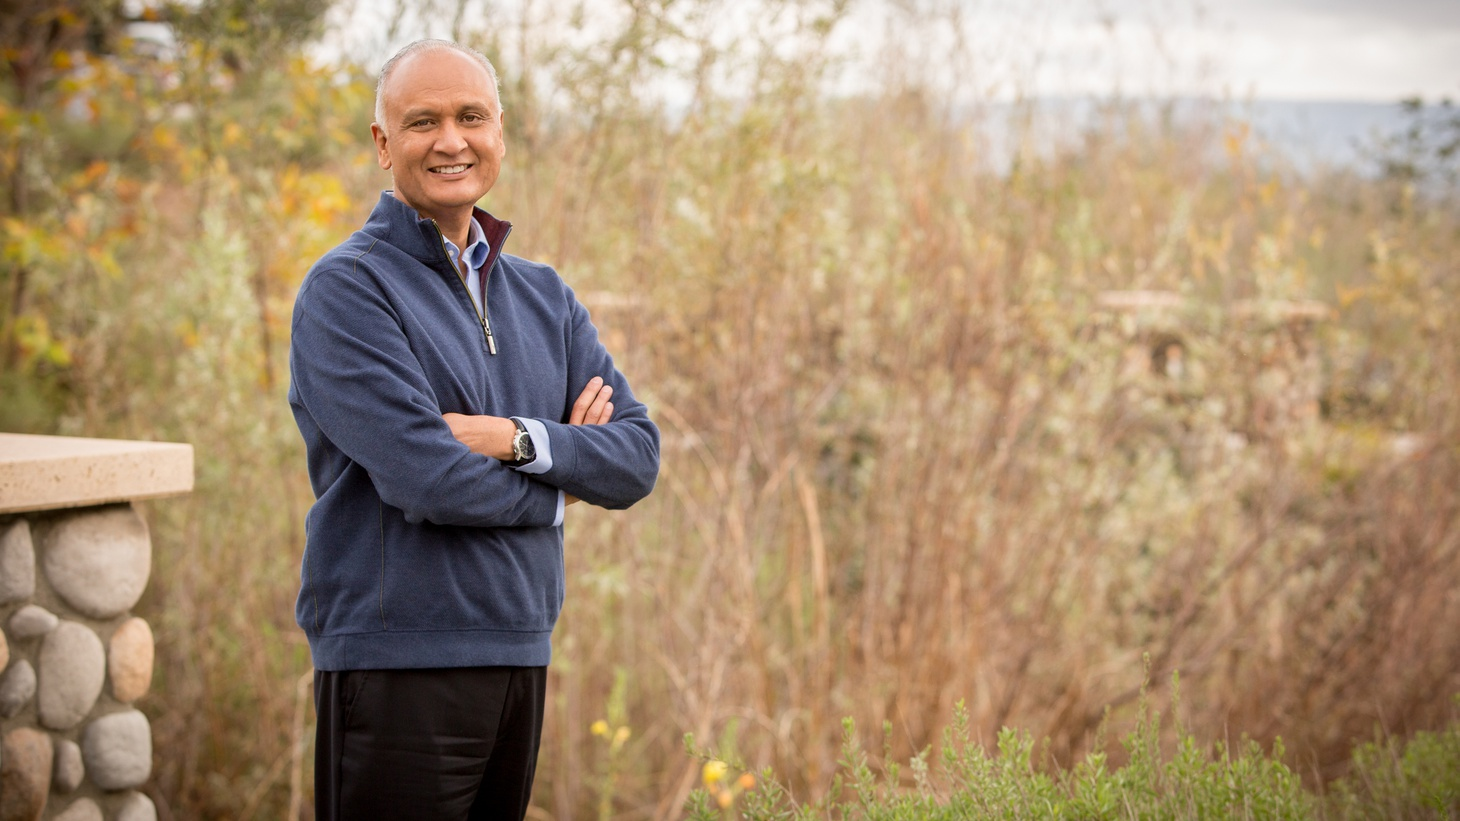 Ed Hernandez is running against fellow Democrat Eleni  Kounalakis to be California's next lieutenant governor. He's an optometrist and state senator representing parts of the San Gabriel Valley. He terms out of that position this year.